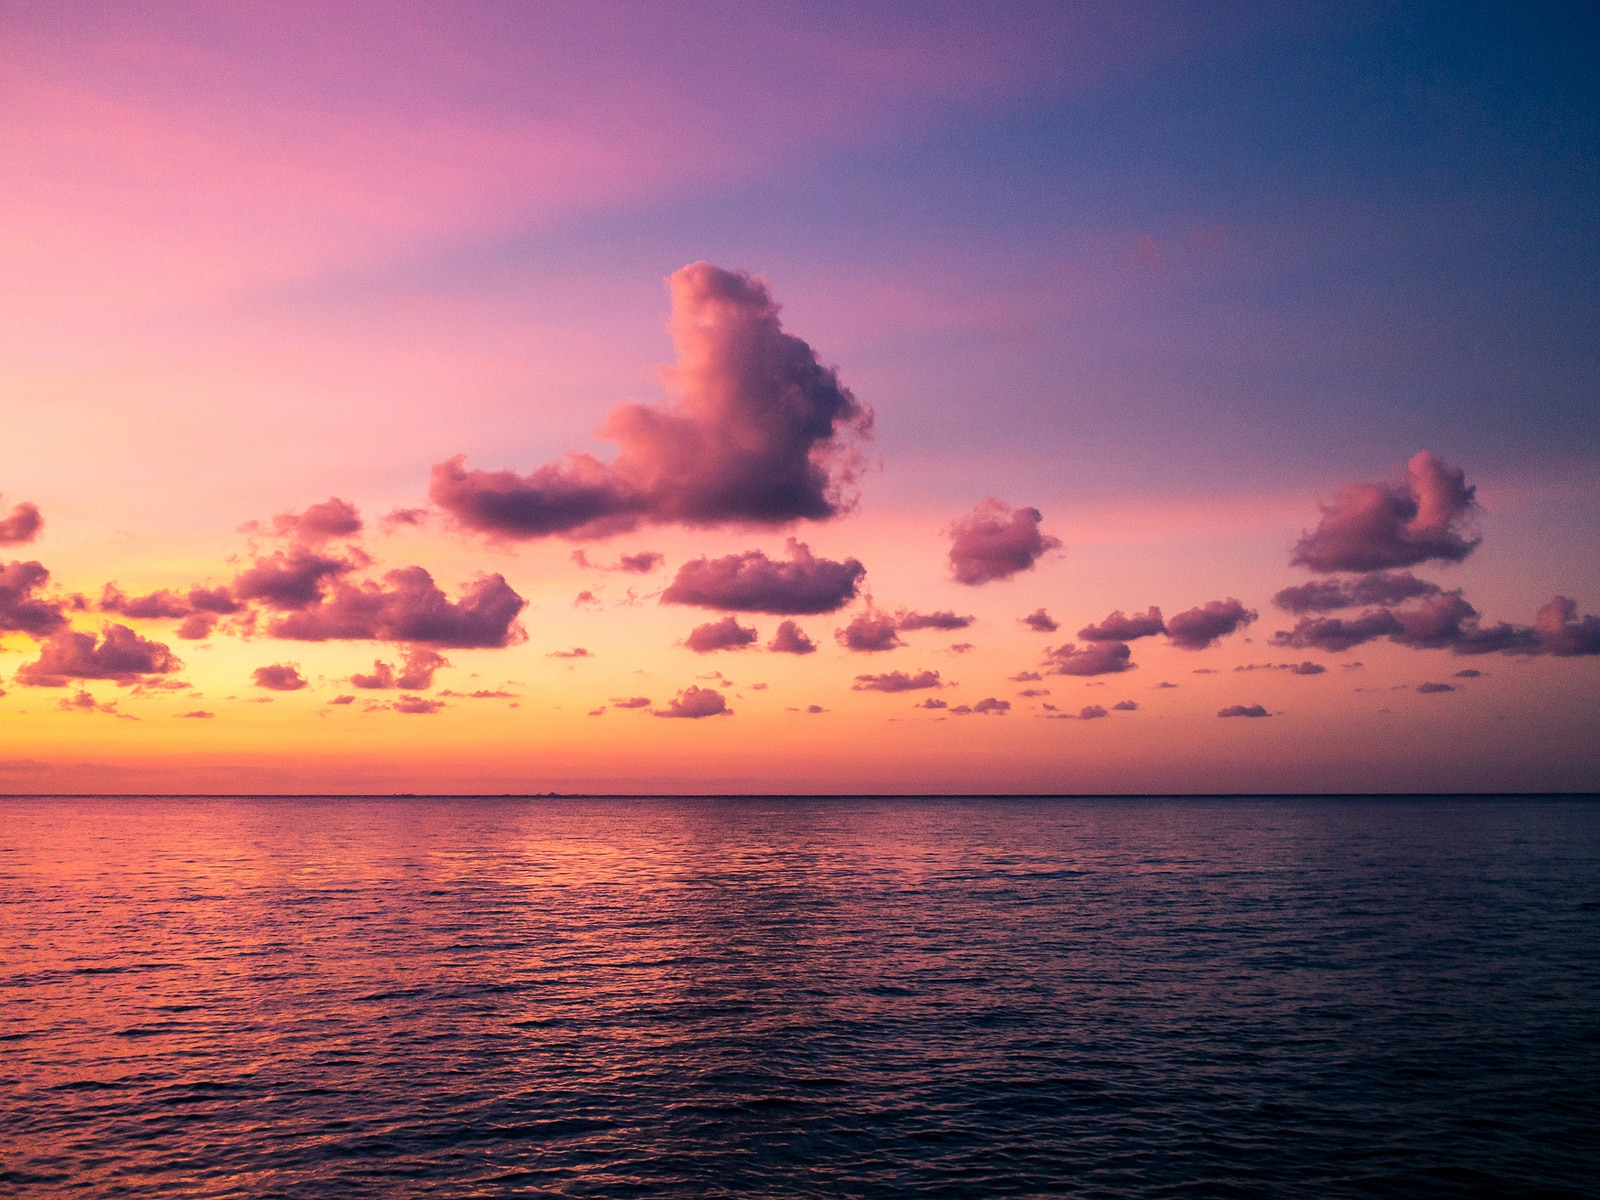 A pink sunset over the Caribbean Sea things to do in Cozumel